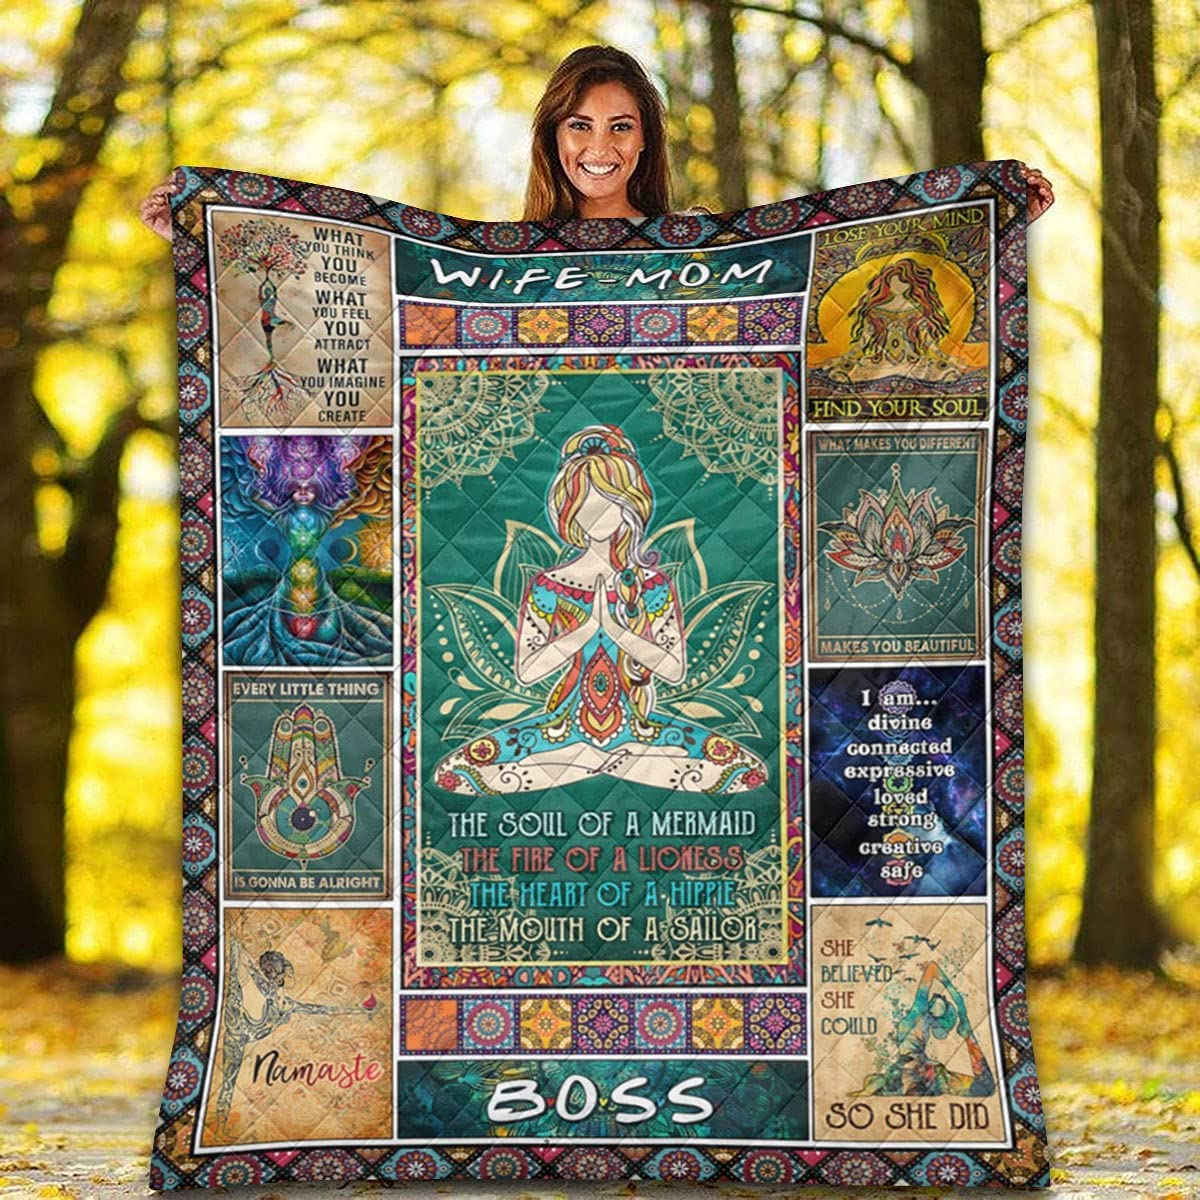 Quilt for Wife Mom - Over item handling Yoga Shipping included Hippie Mandala Quil Pattern Girl